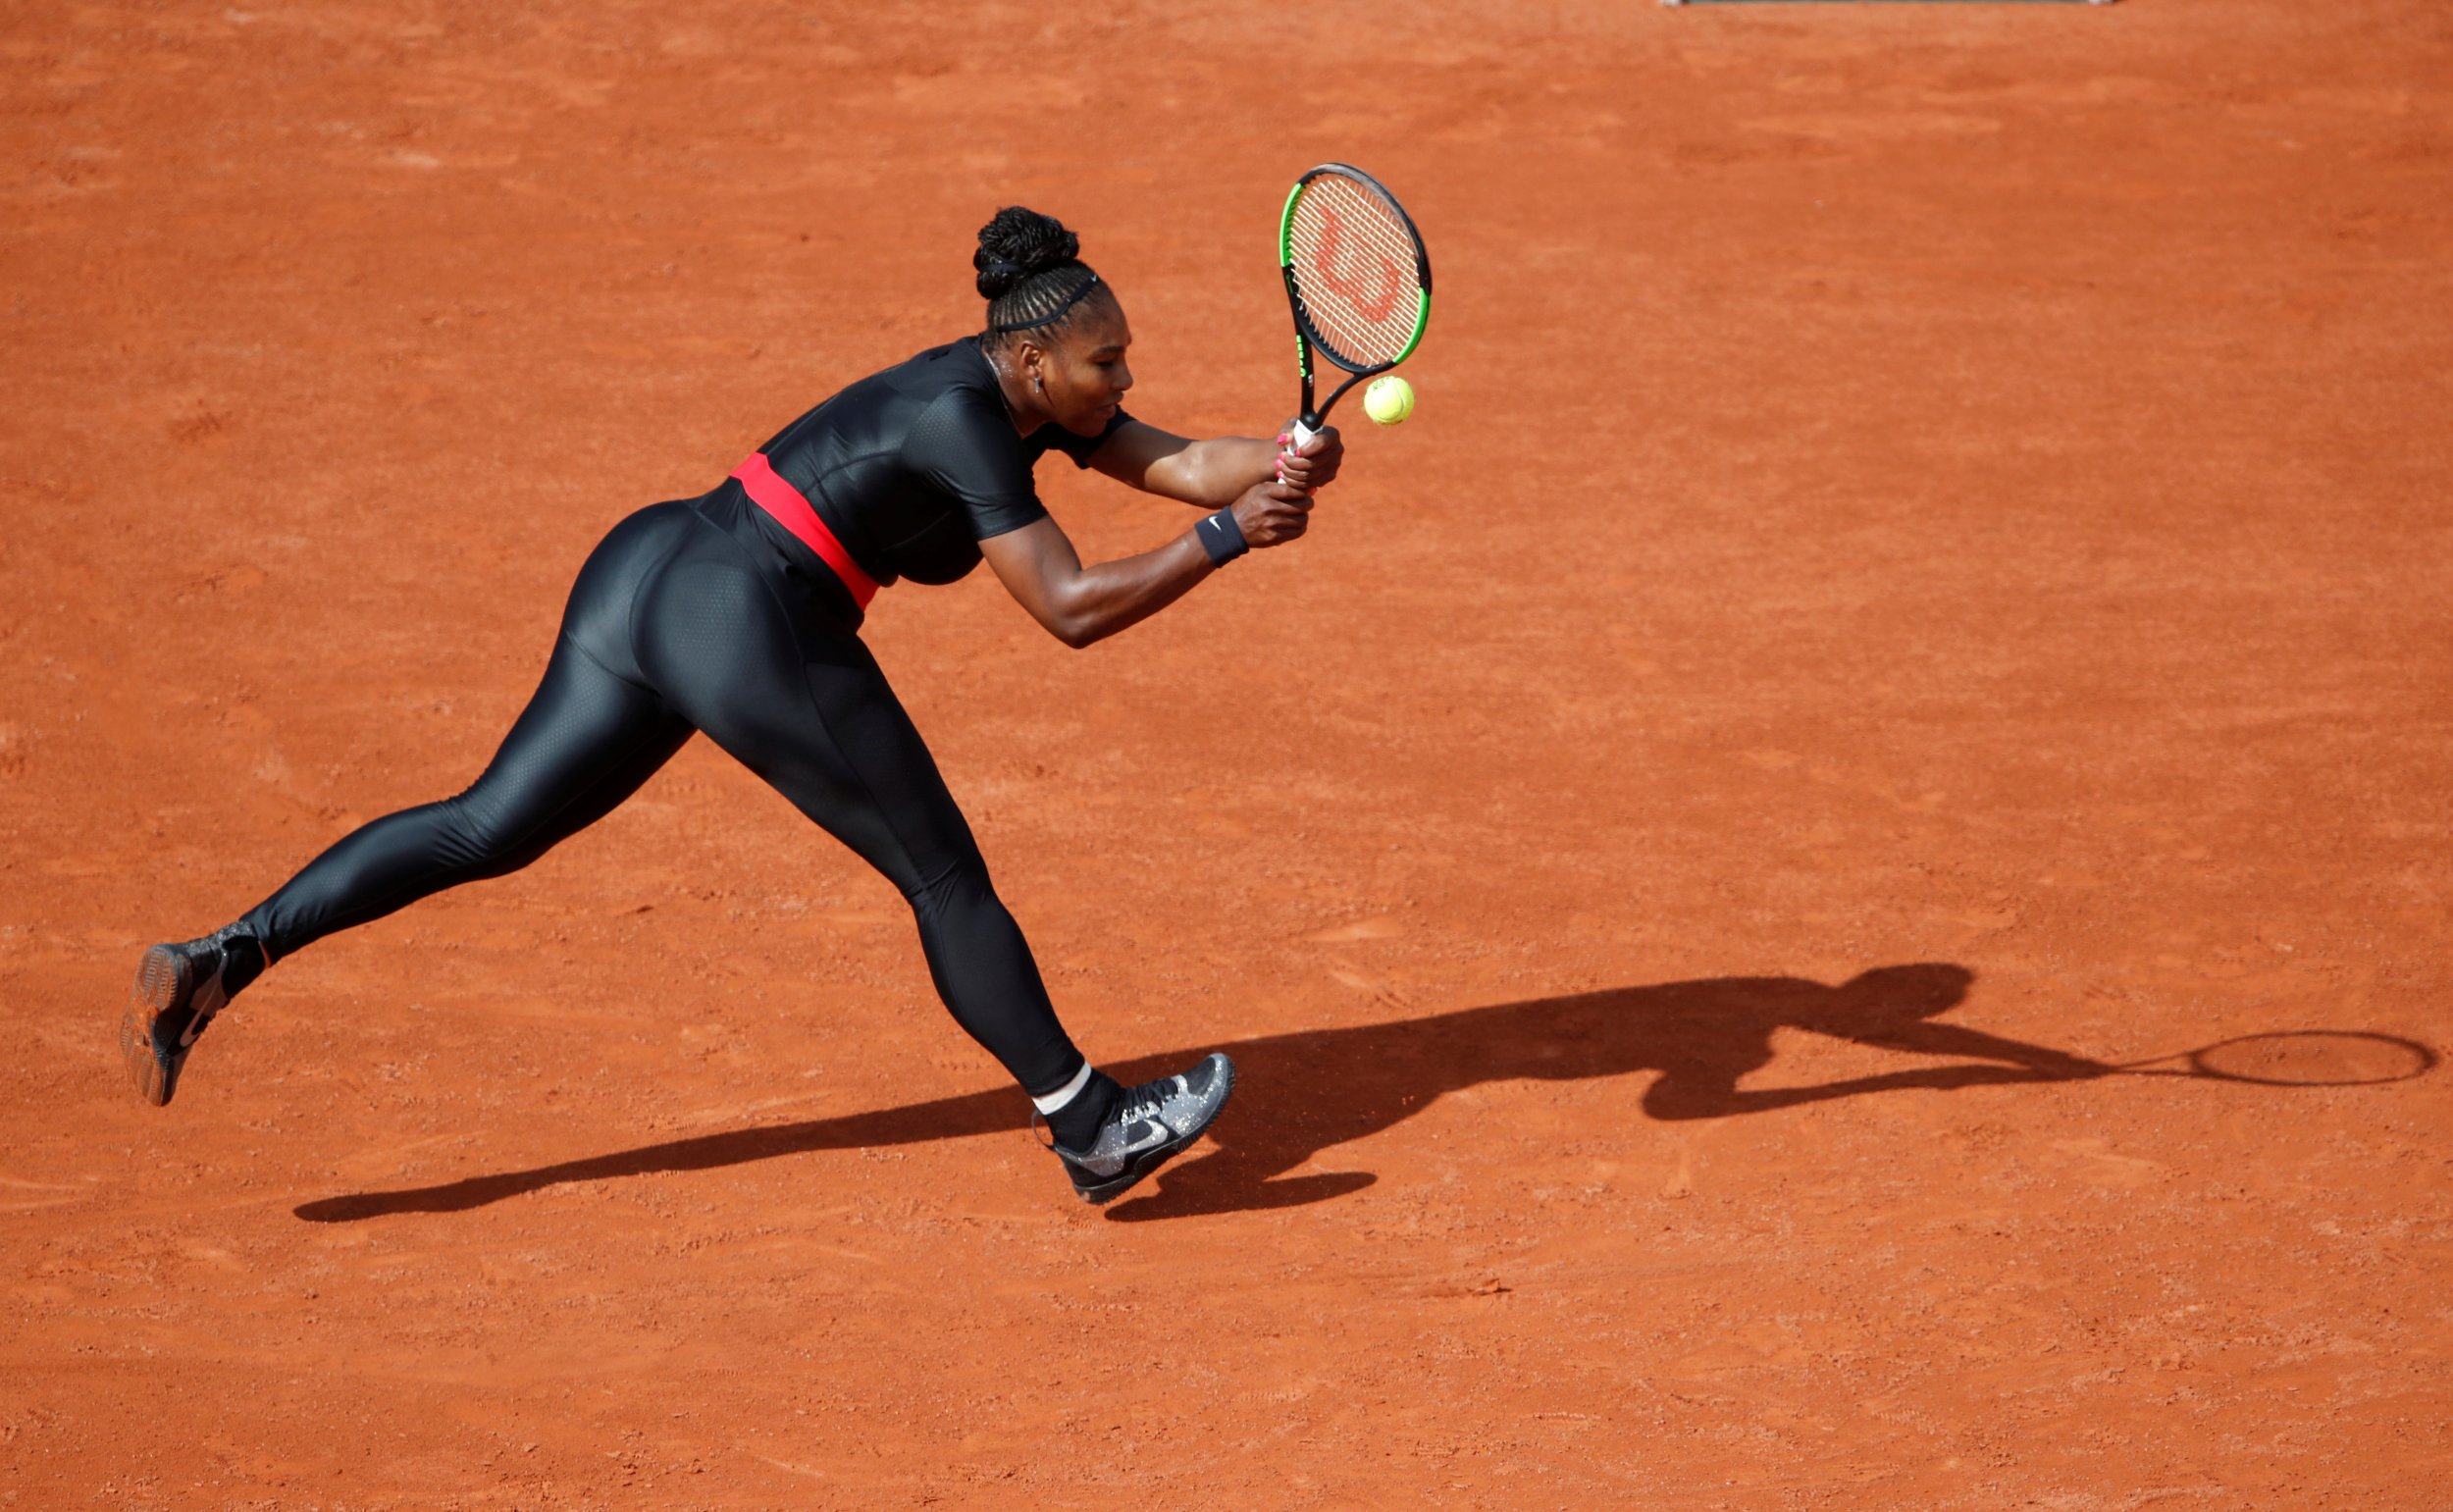 Serena Williams  Black Panther Inspired Bodysuit Has Sparked a Controversy  in Tennis 72788748c